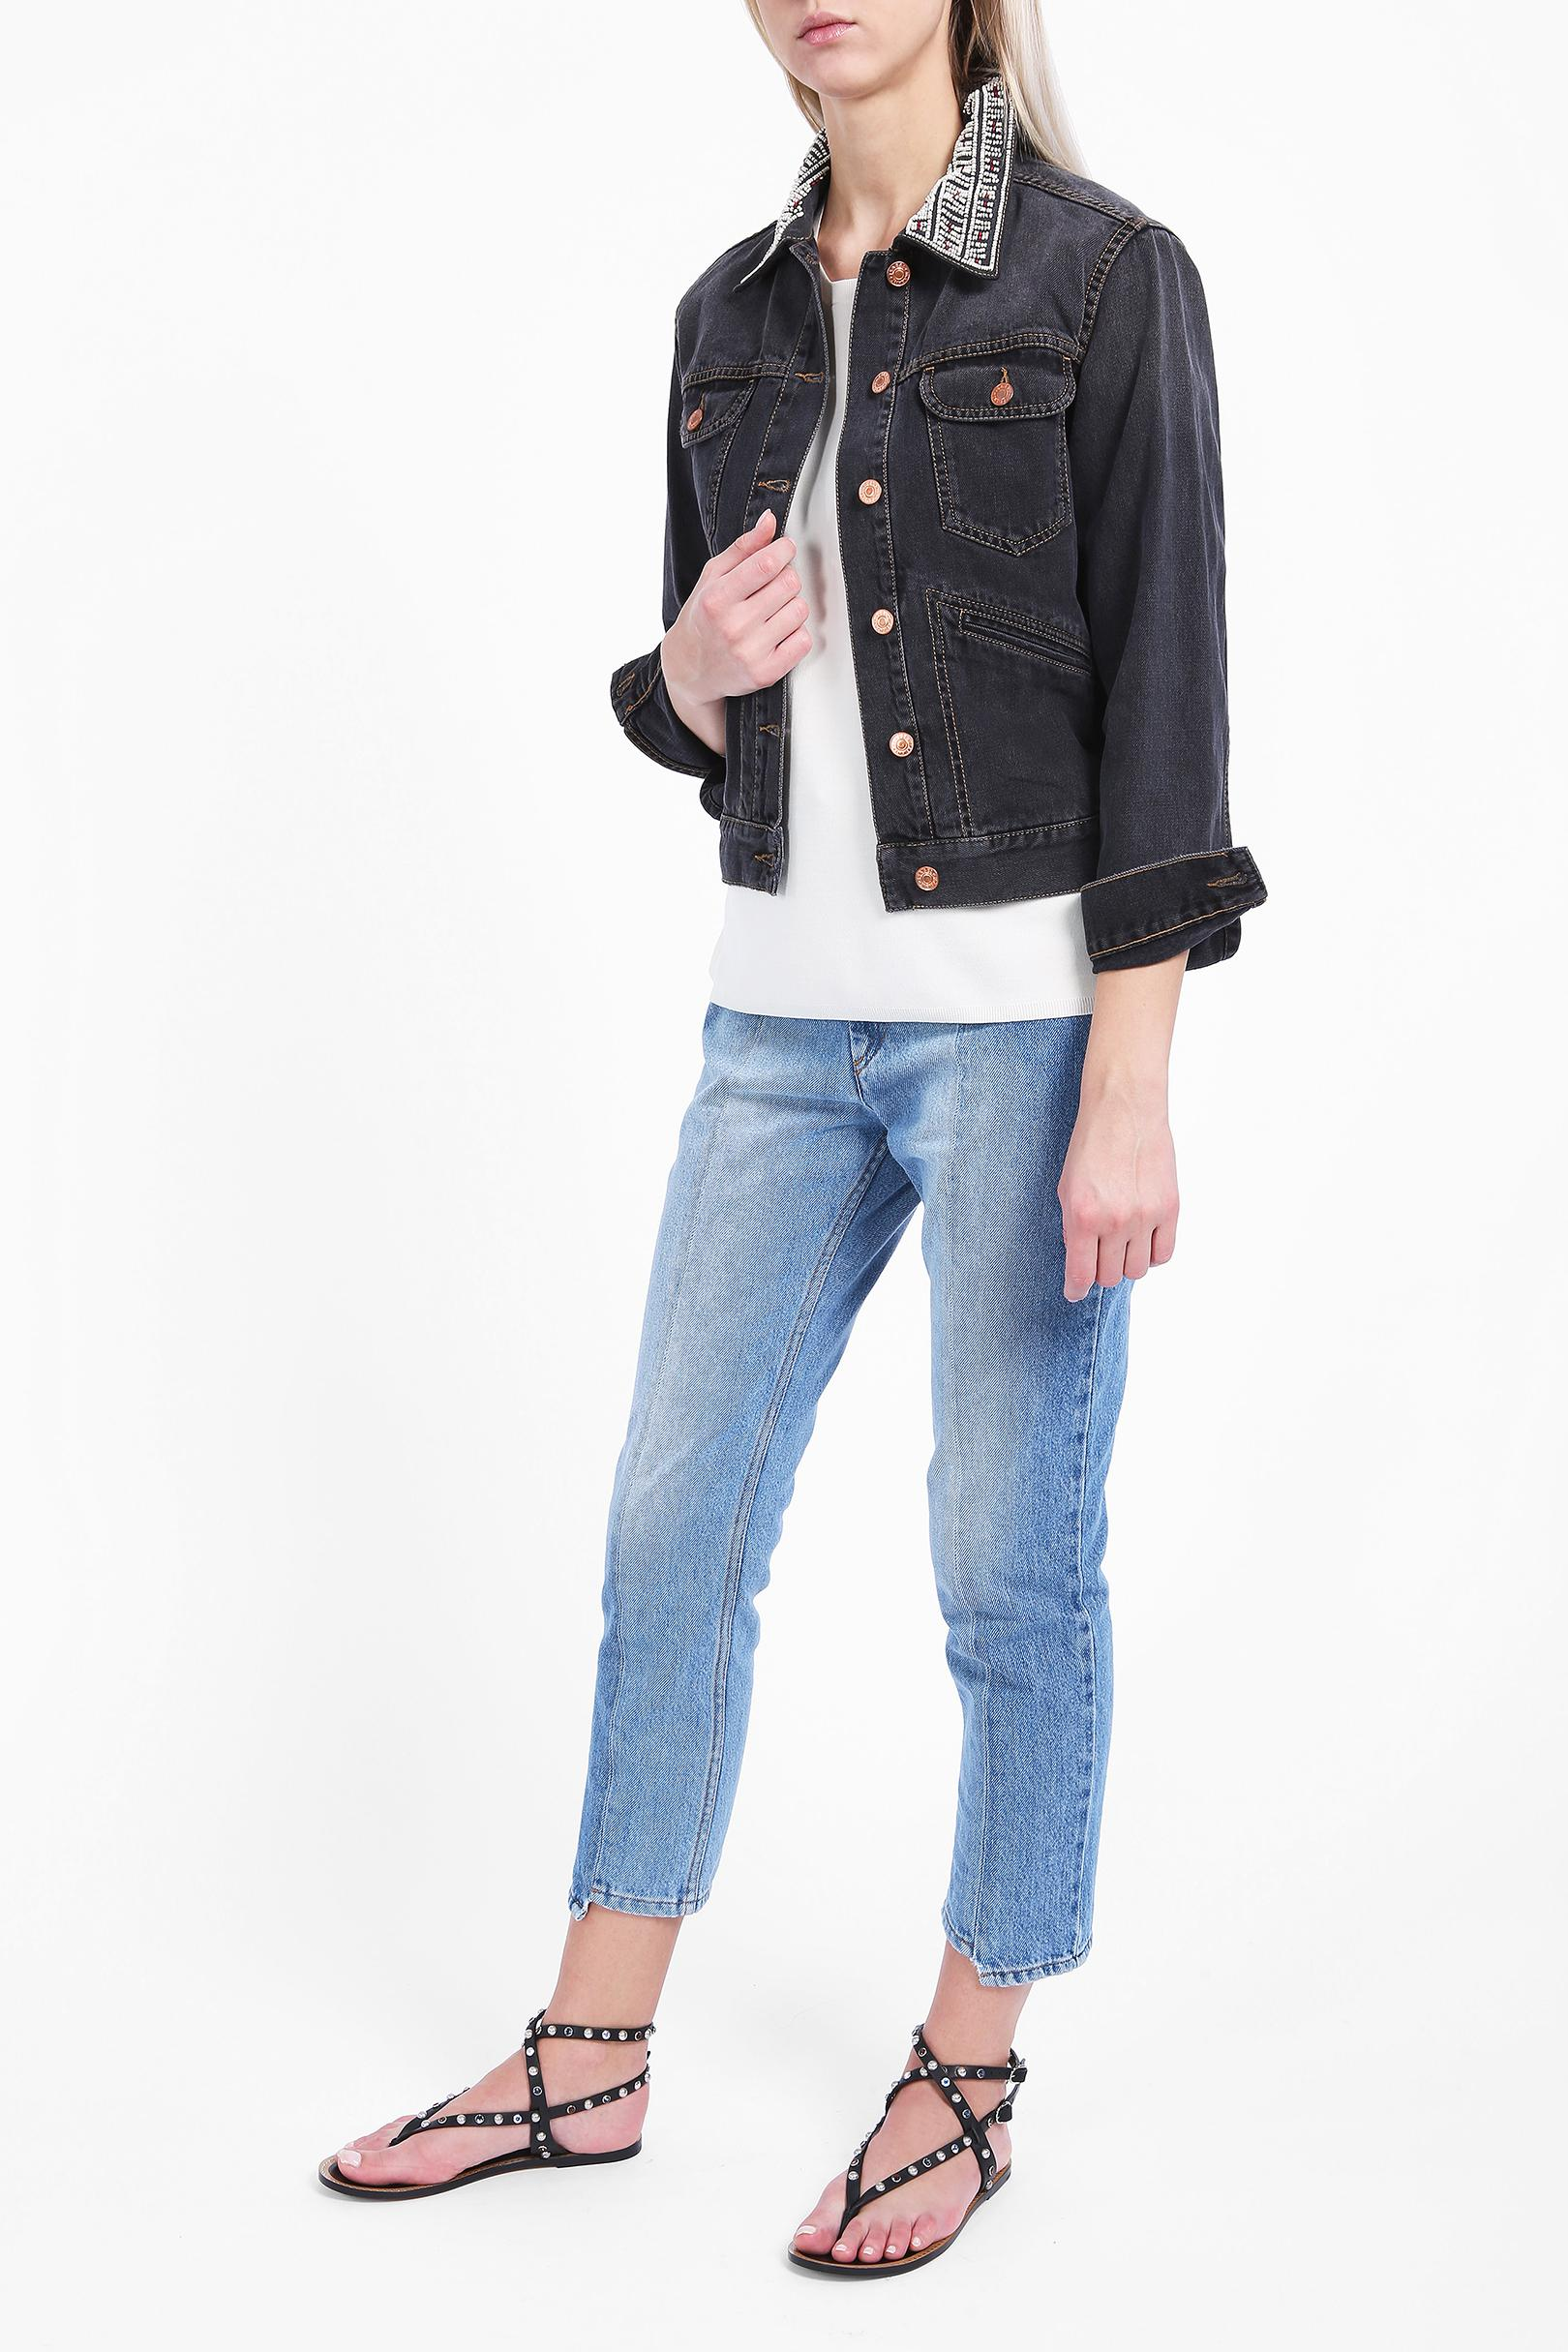 96b7fbeb44 Lyst - Étoile Isabel Marant Christa Denim Jacket in Blue